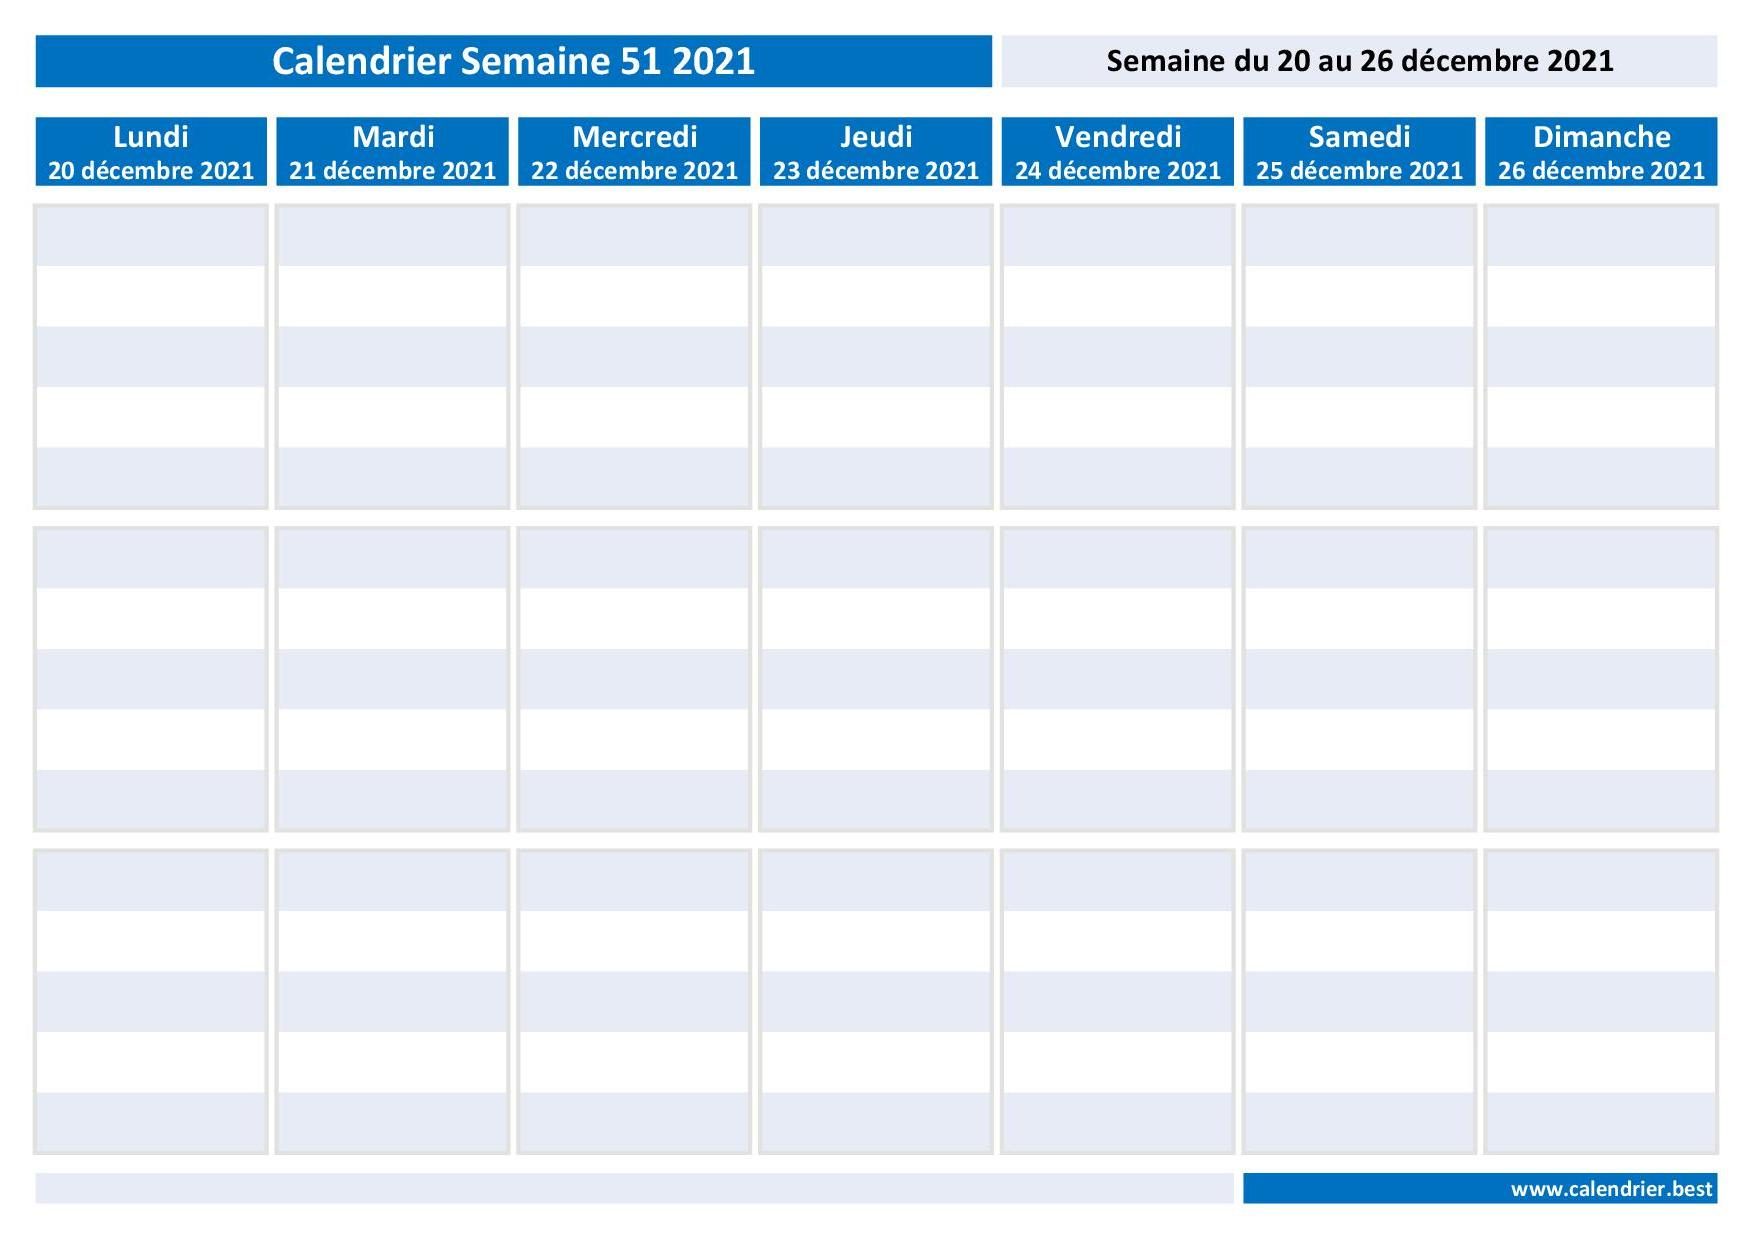 Semaine 51 2021 : dates, calendrier et planning  Calendrier.best